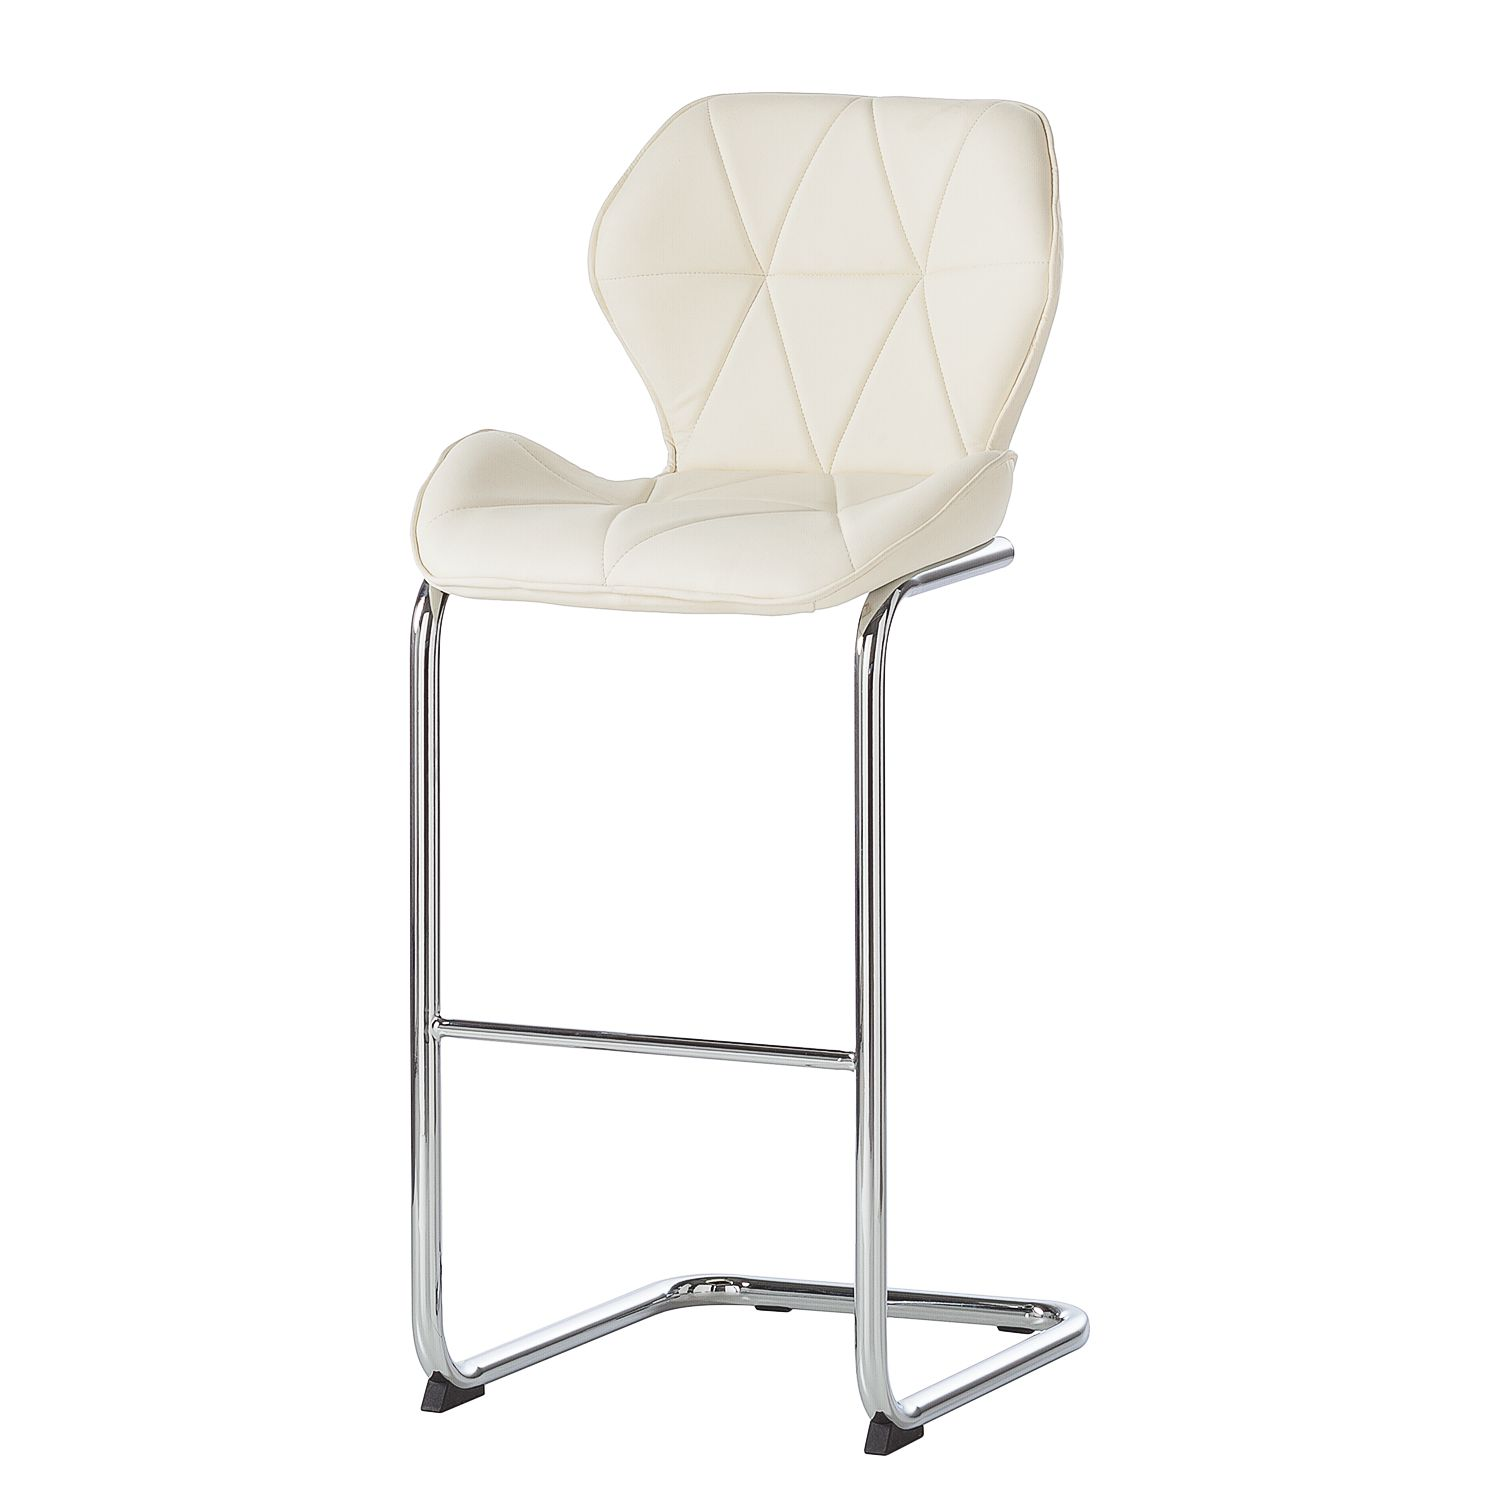 Chaise De Bar Cuir Chaise De Bar Onega Imitation Cuir Blanc Roomscape